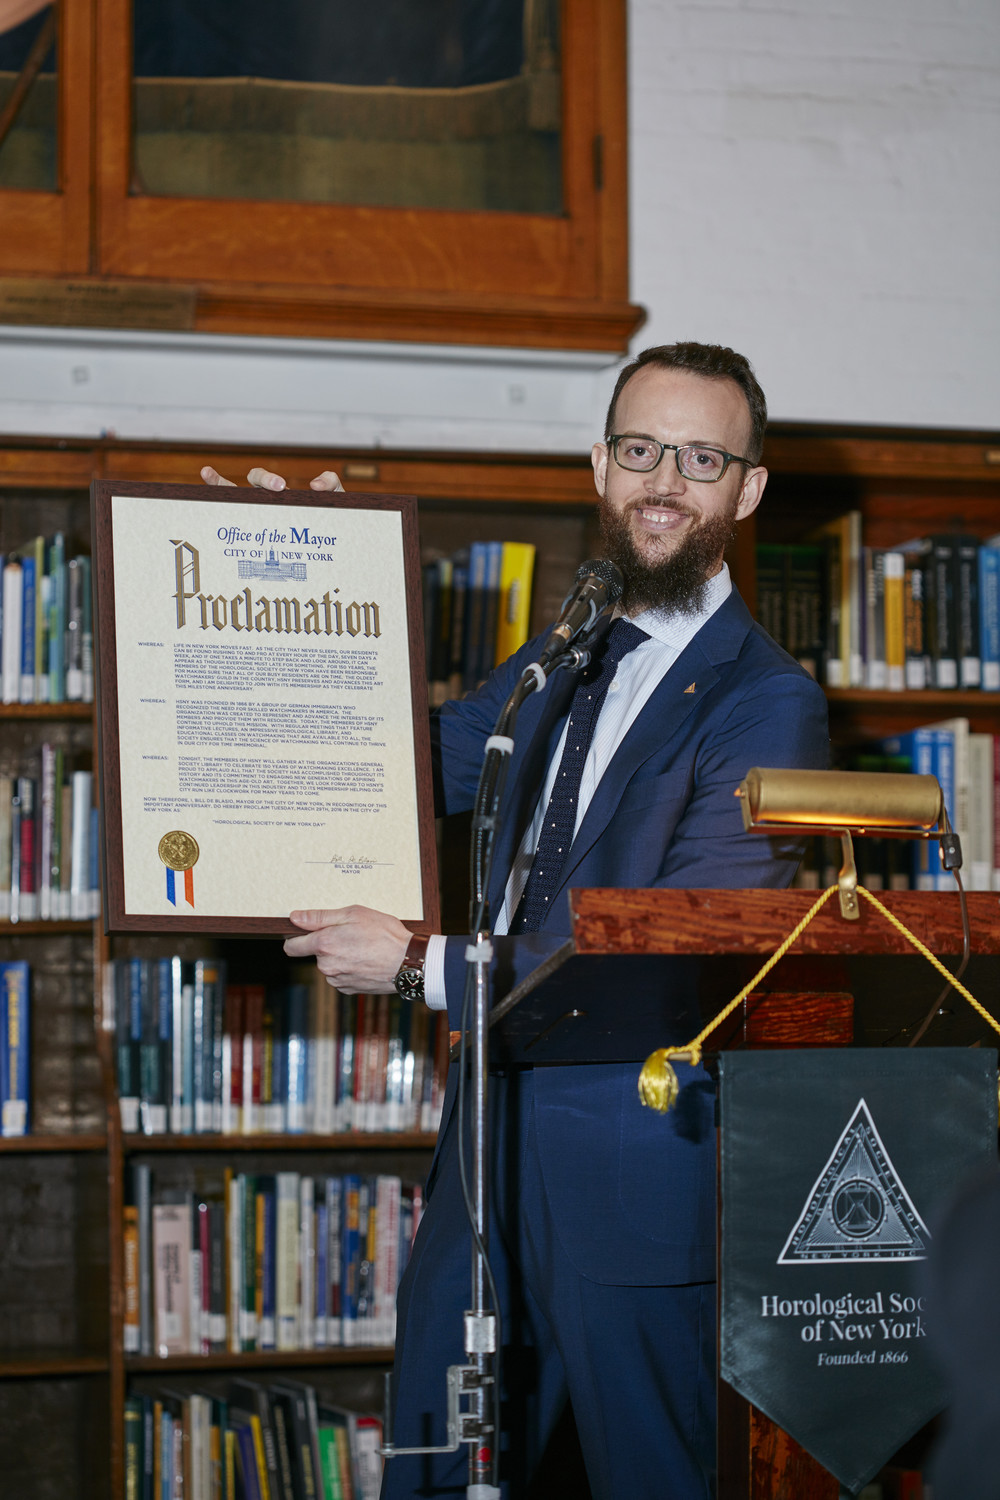 Nicholas Manousos, Vice President of HSNY, presenting a proclamation from New York City Mayor Bill de Blasio